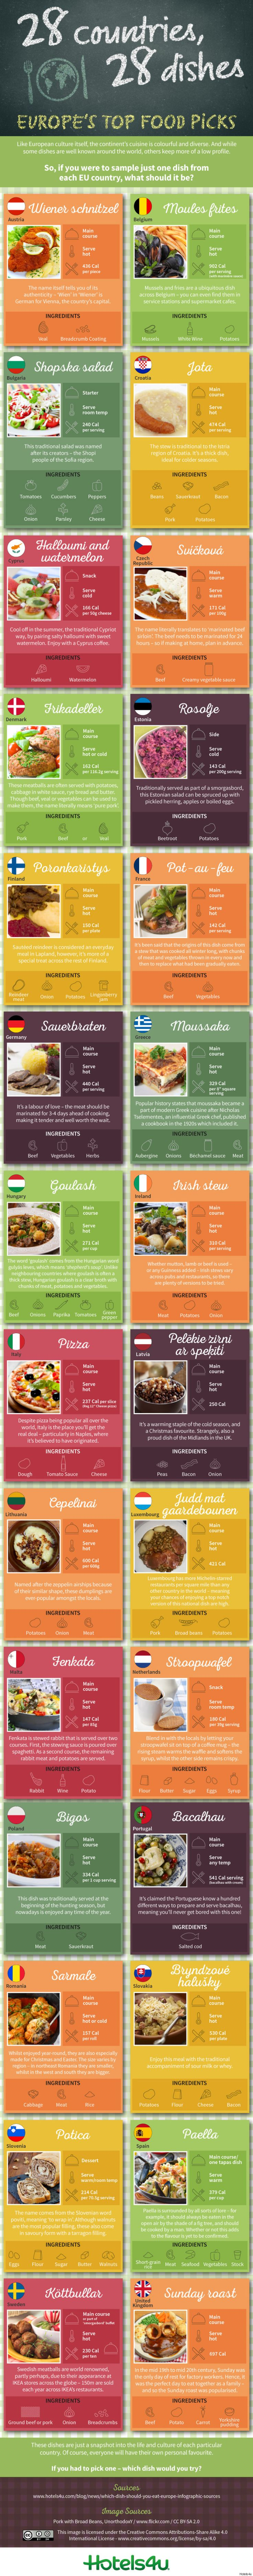 Europe on a plate: 28 countries, 28 dishes. Europe's top foods